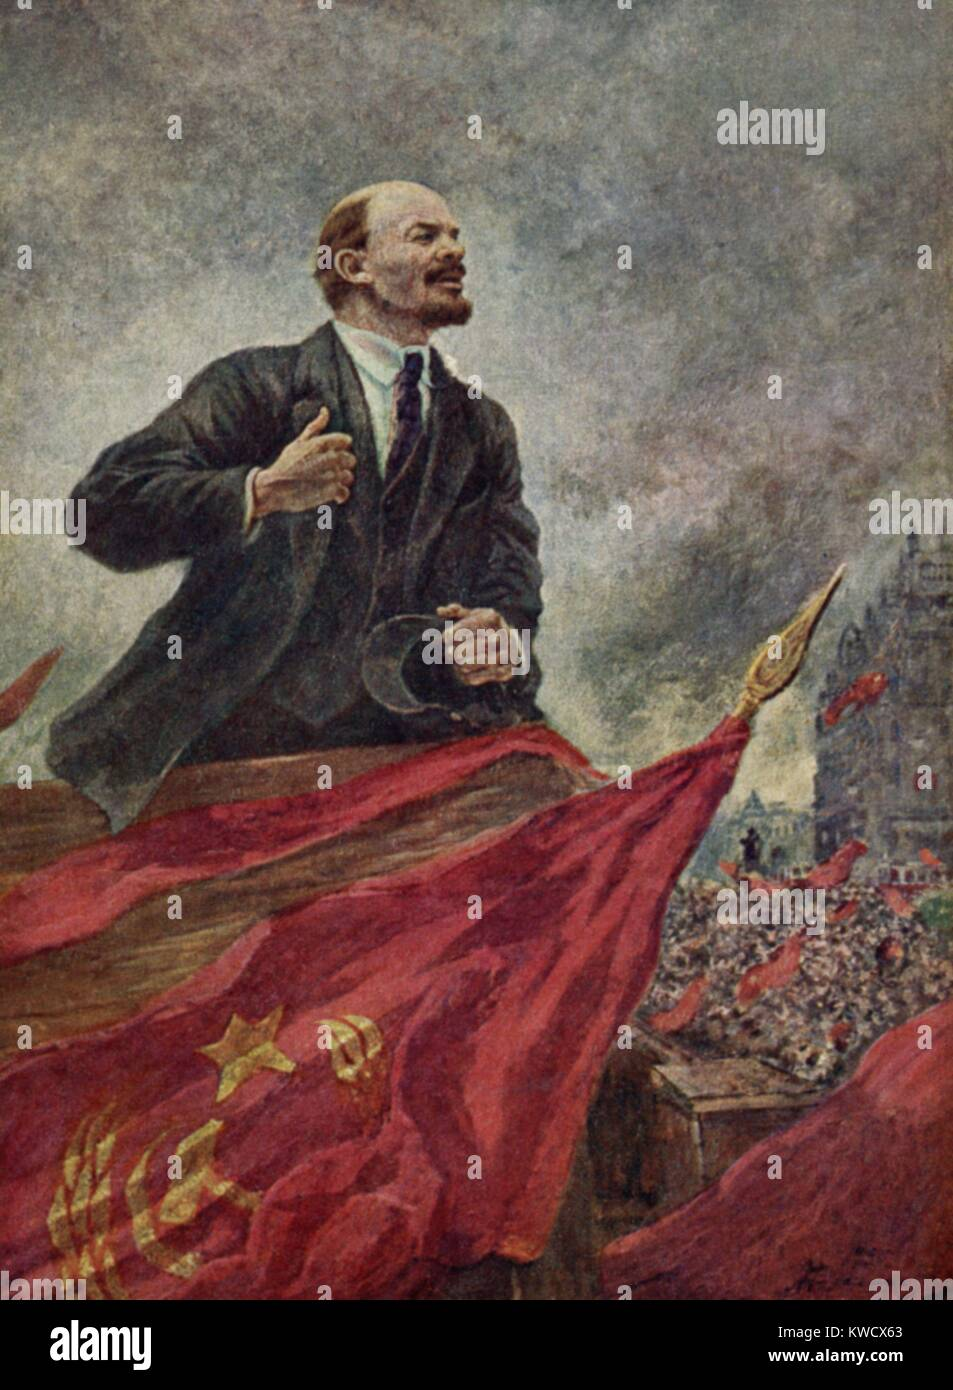 LENIN ON THE STAND, by Alexander Gerassimov, c. 1925-1940. Social-Realist painting of Lenin speaking. Gerassimov - Stock Image